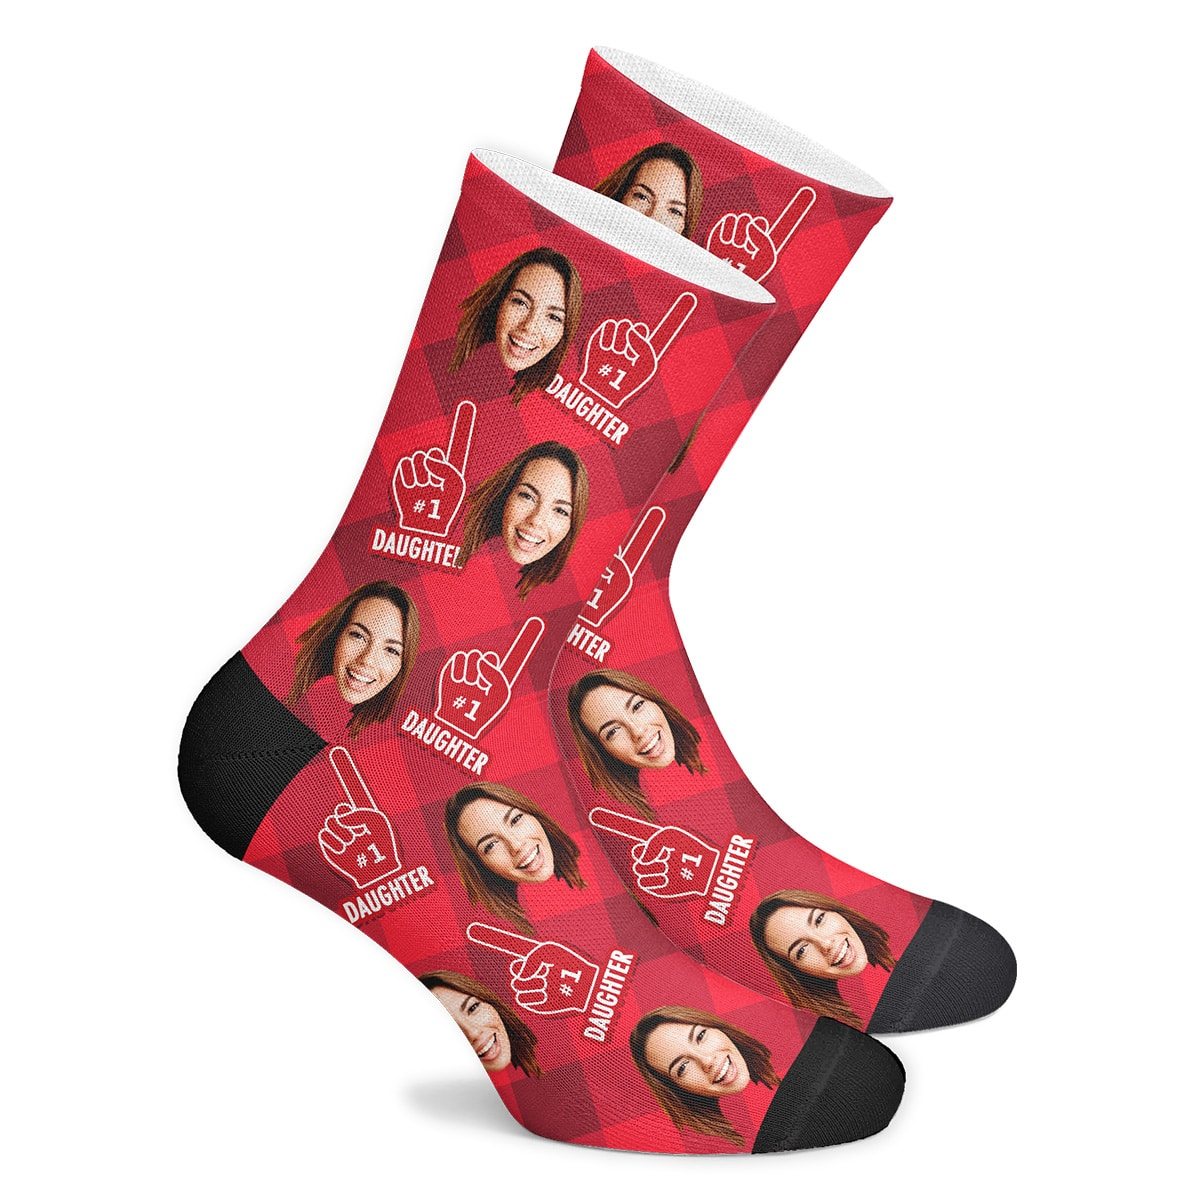 Custom #1 Daughter Fan Socks